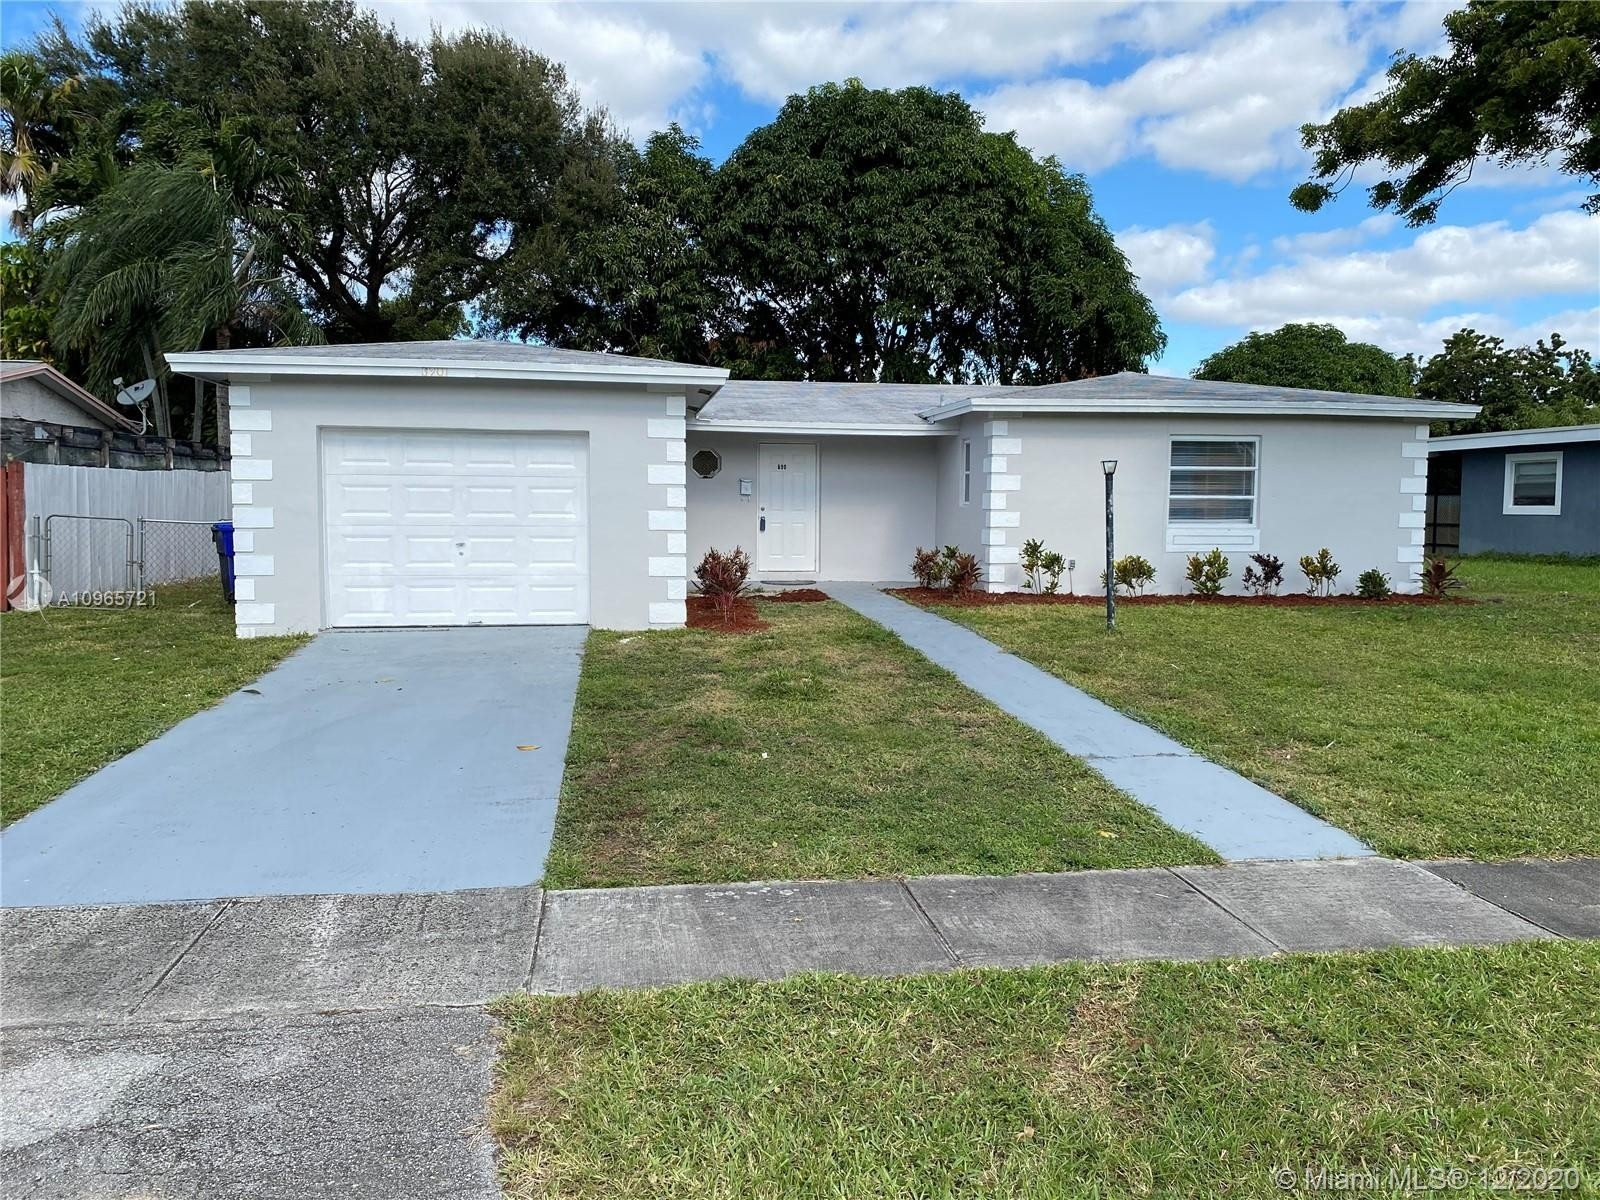 Single Family Home for Sale at Kimberly Village, North Lauderdale, FL 33068